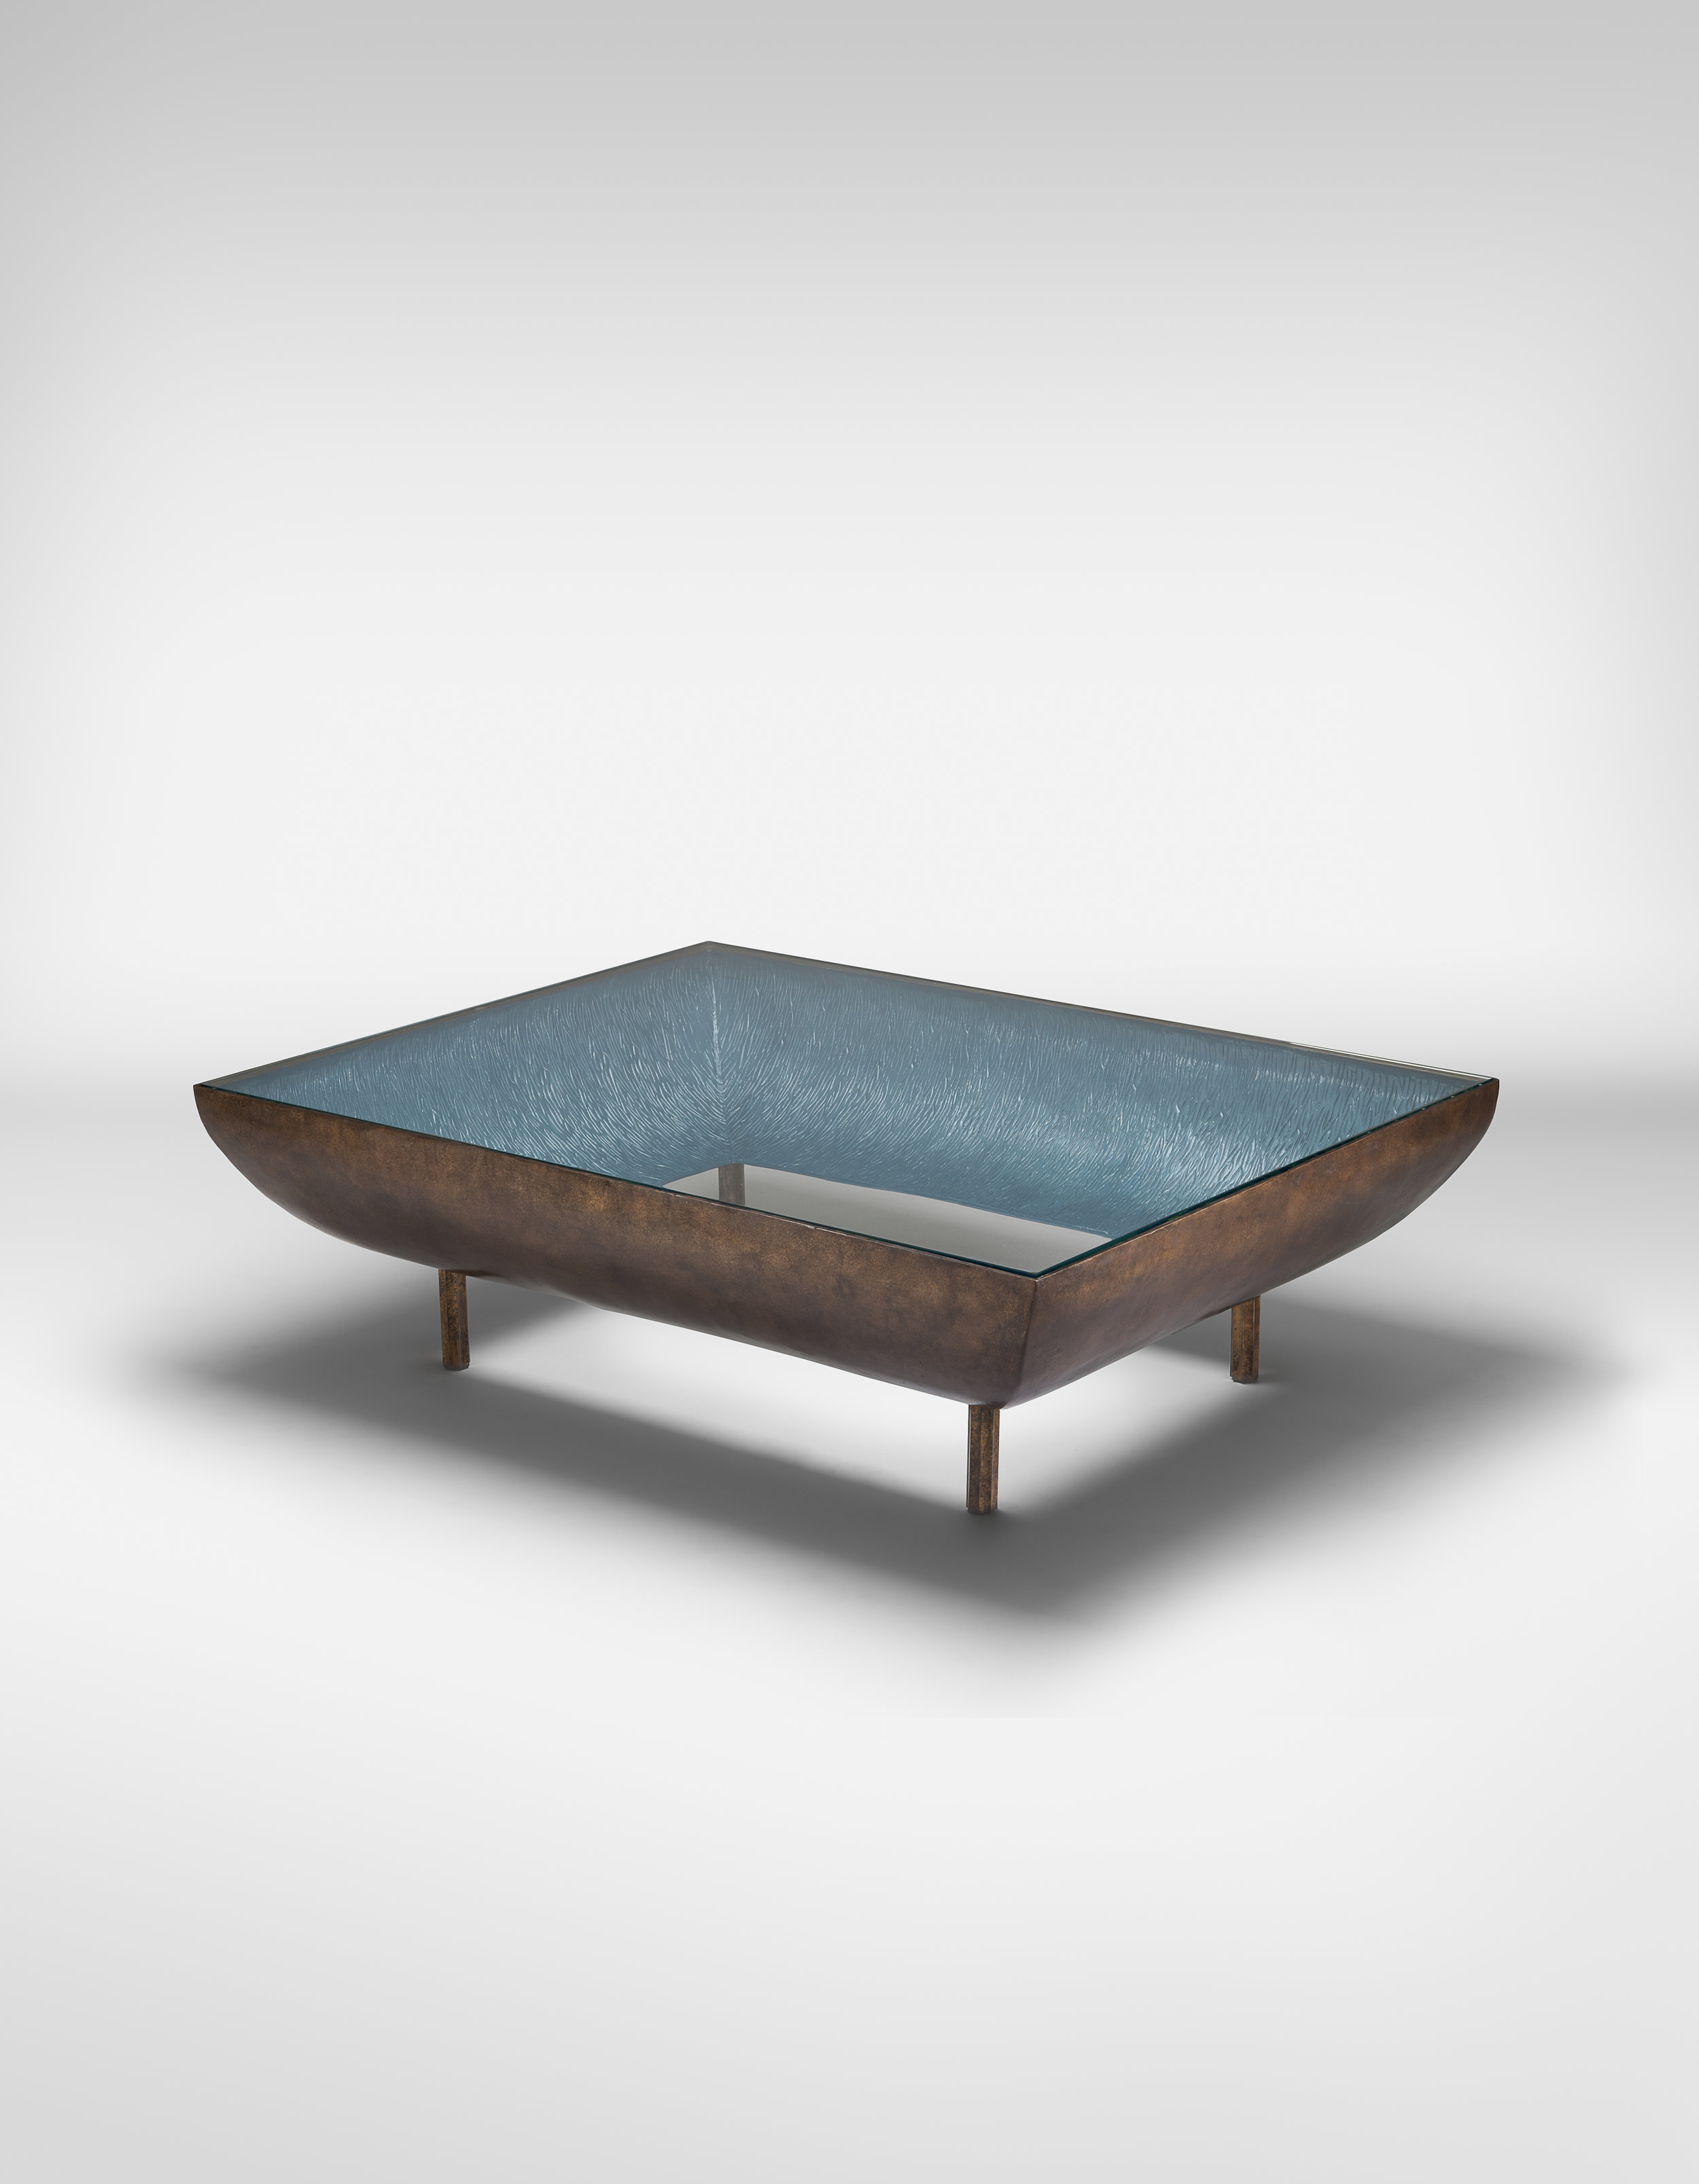 Anthony Coffee Table by Francis Sultana